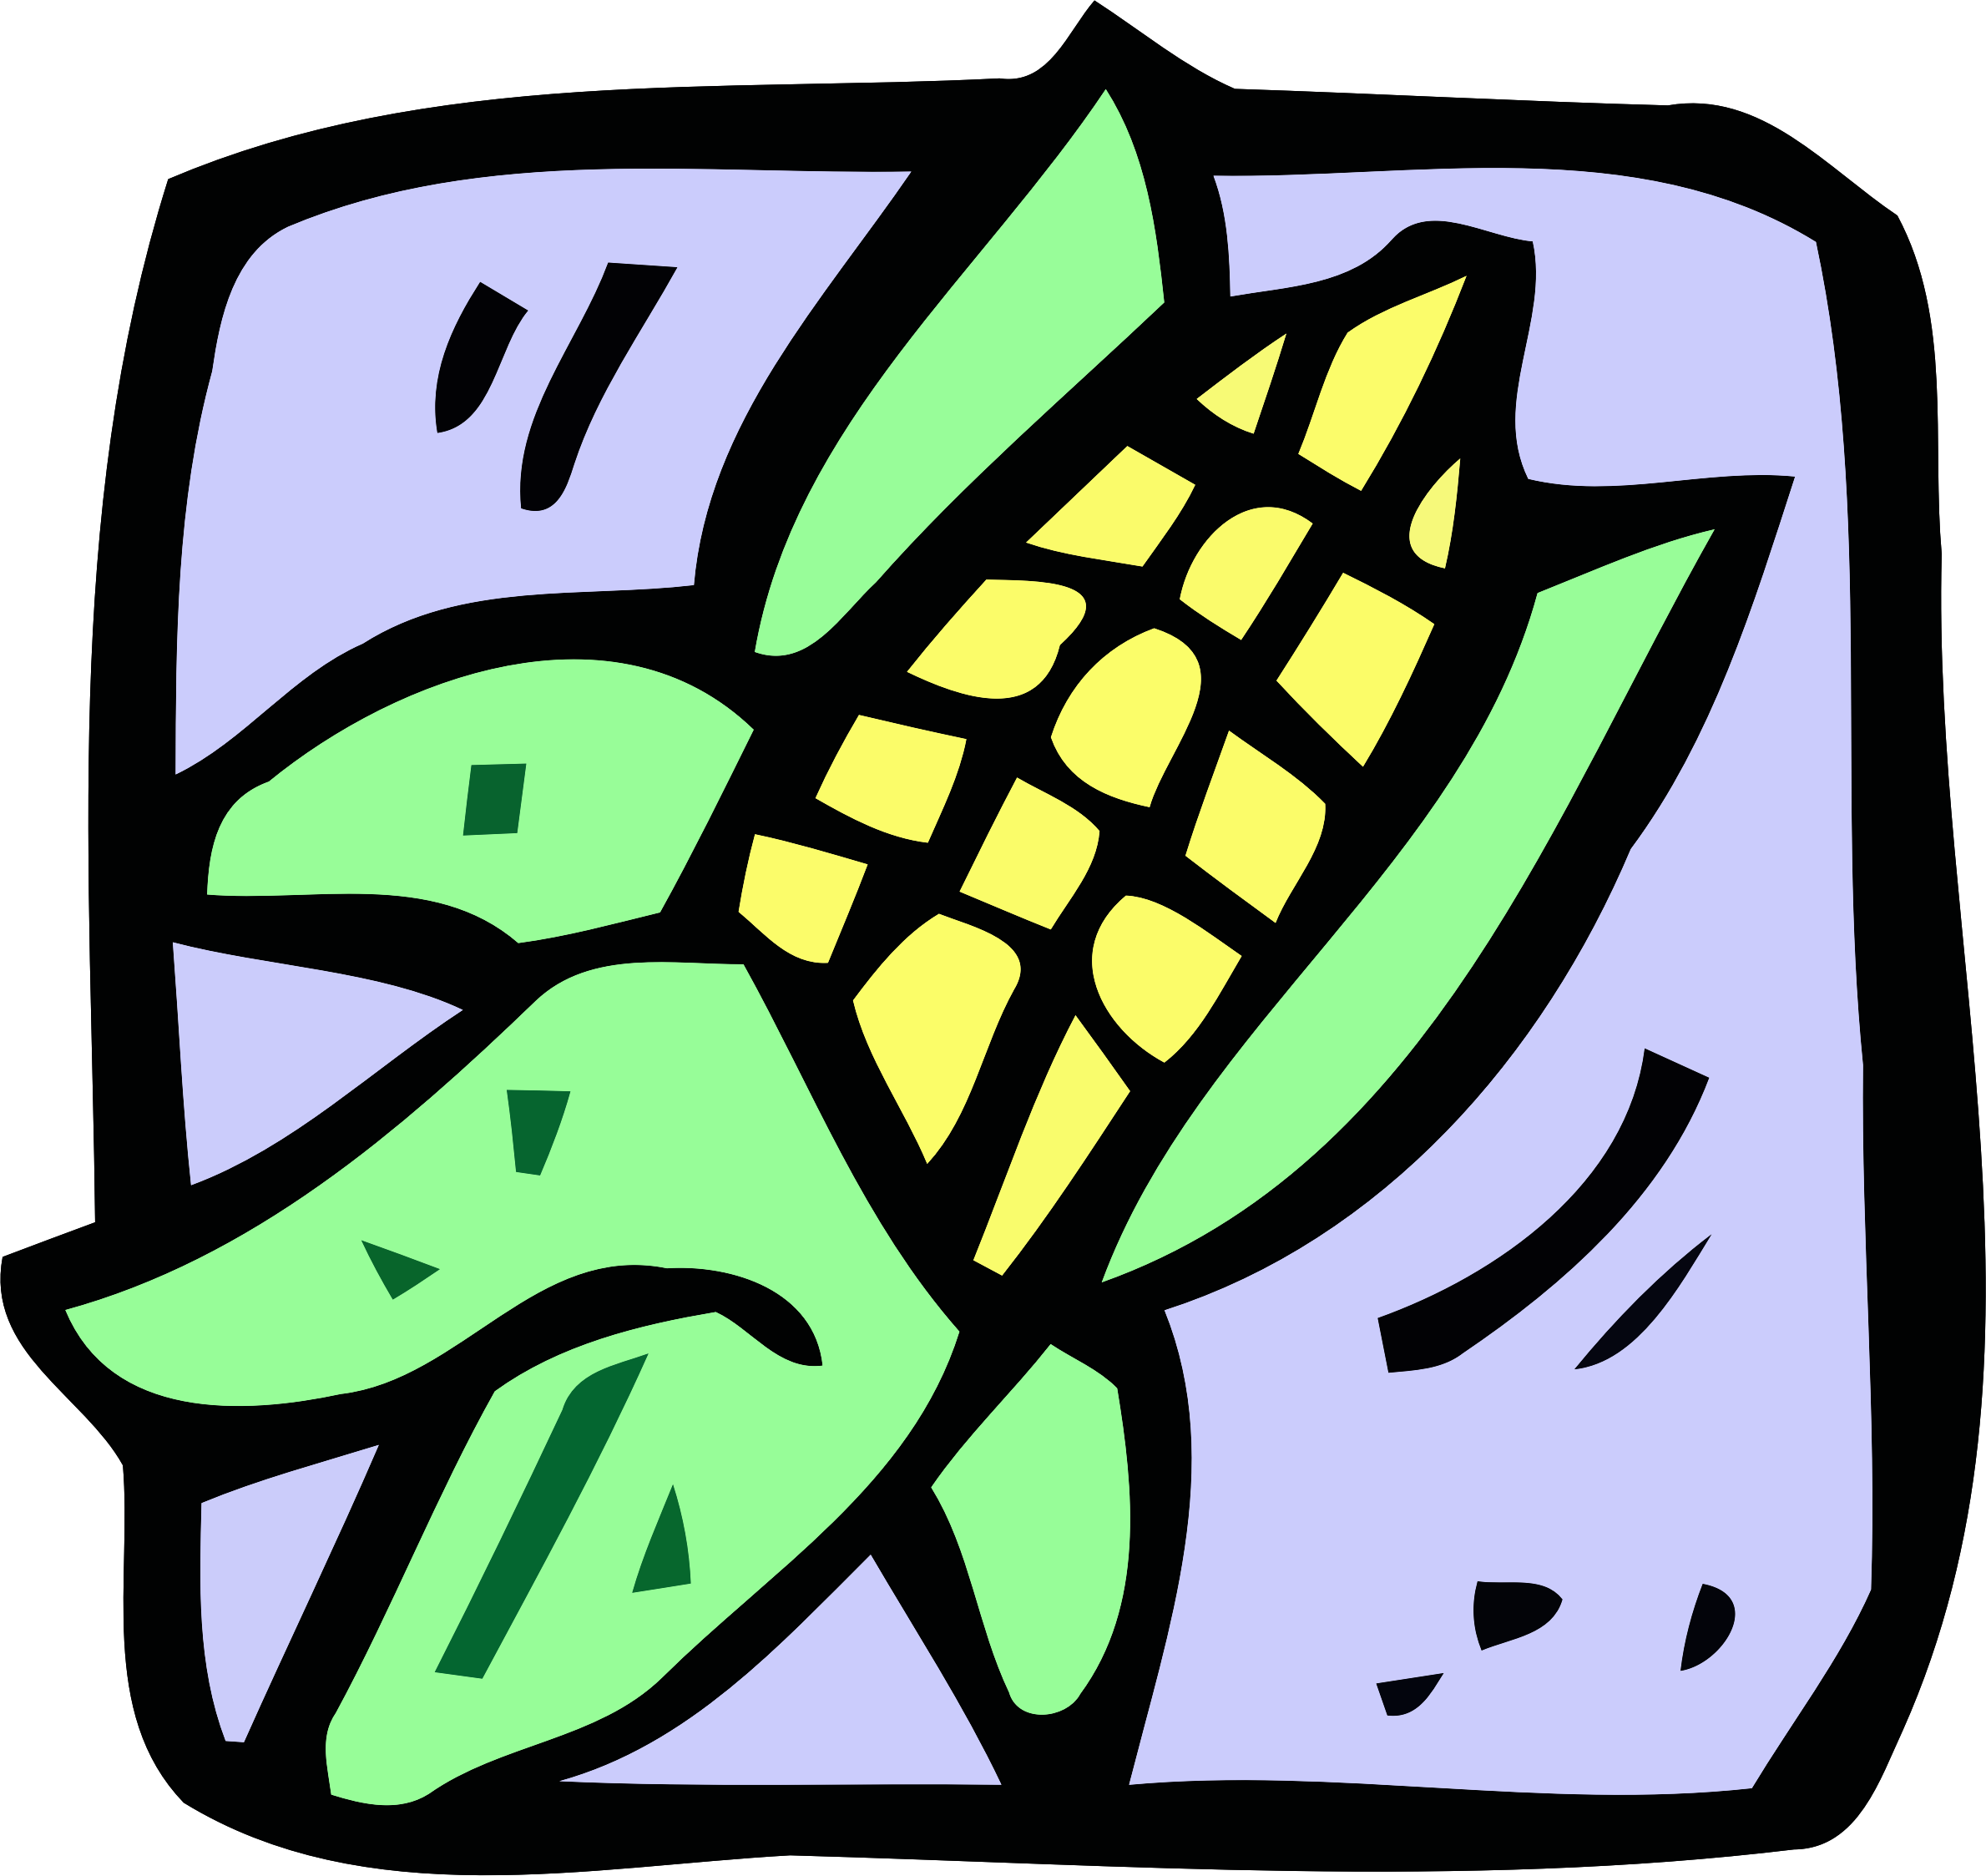 Food and drink icon - sweetcorn by Firkin